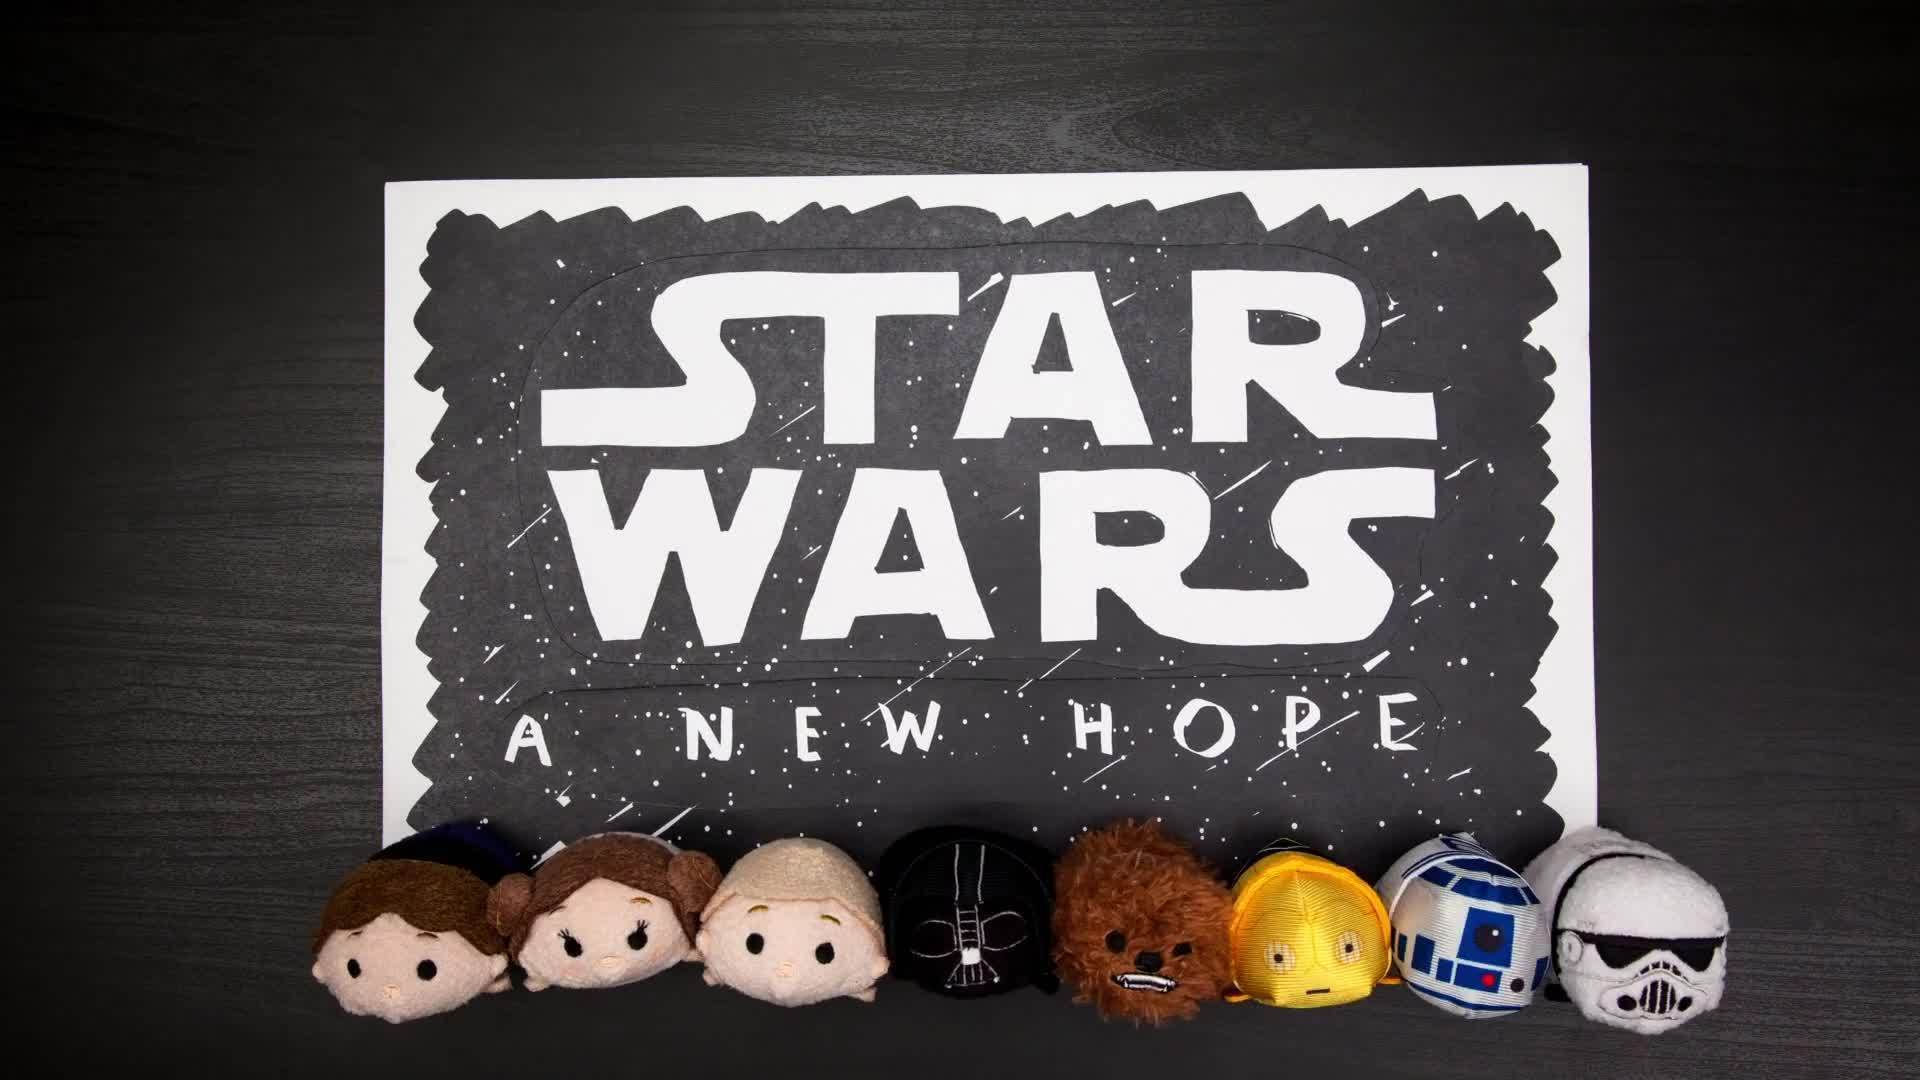 Star Wars: A New Hope as told by Tsum Tsum